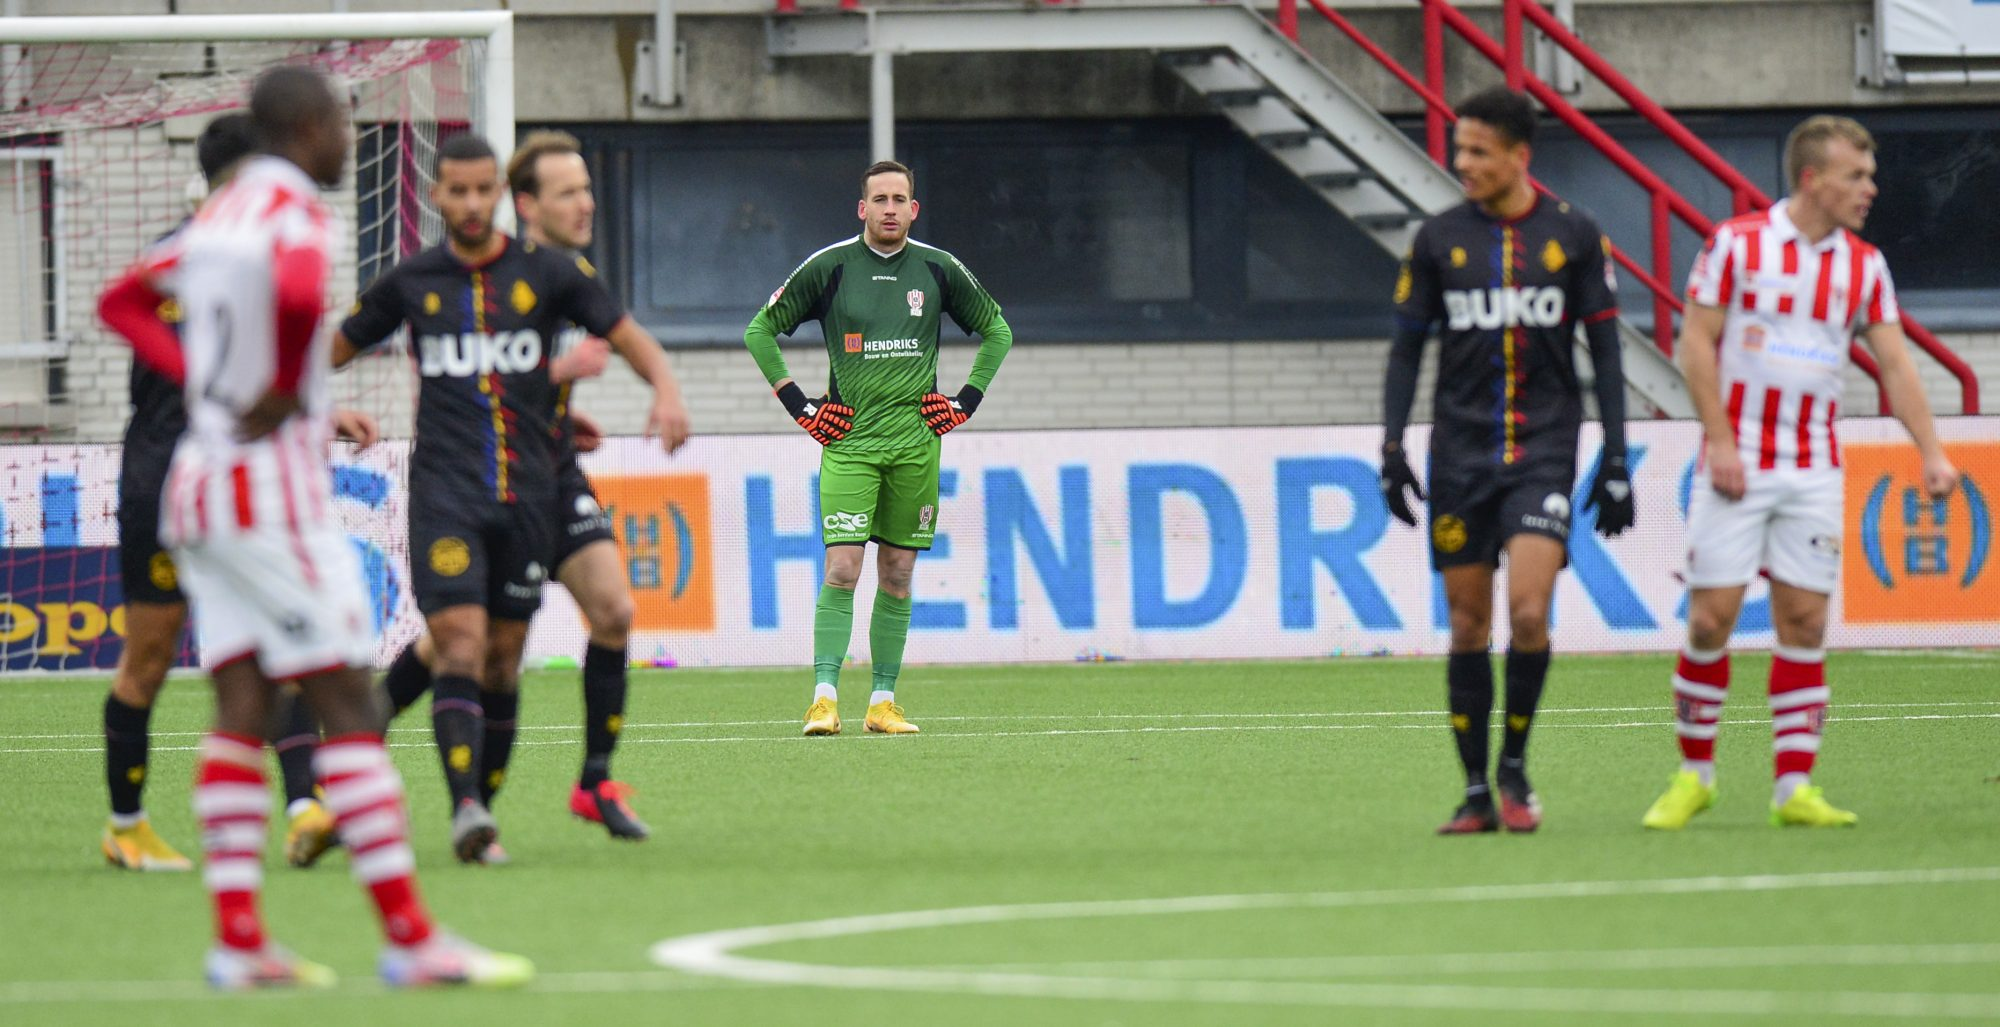 OFF DAY TOP OSS TEGEN STERK TELSTAR 1-4